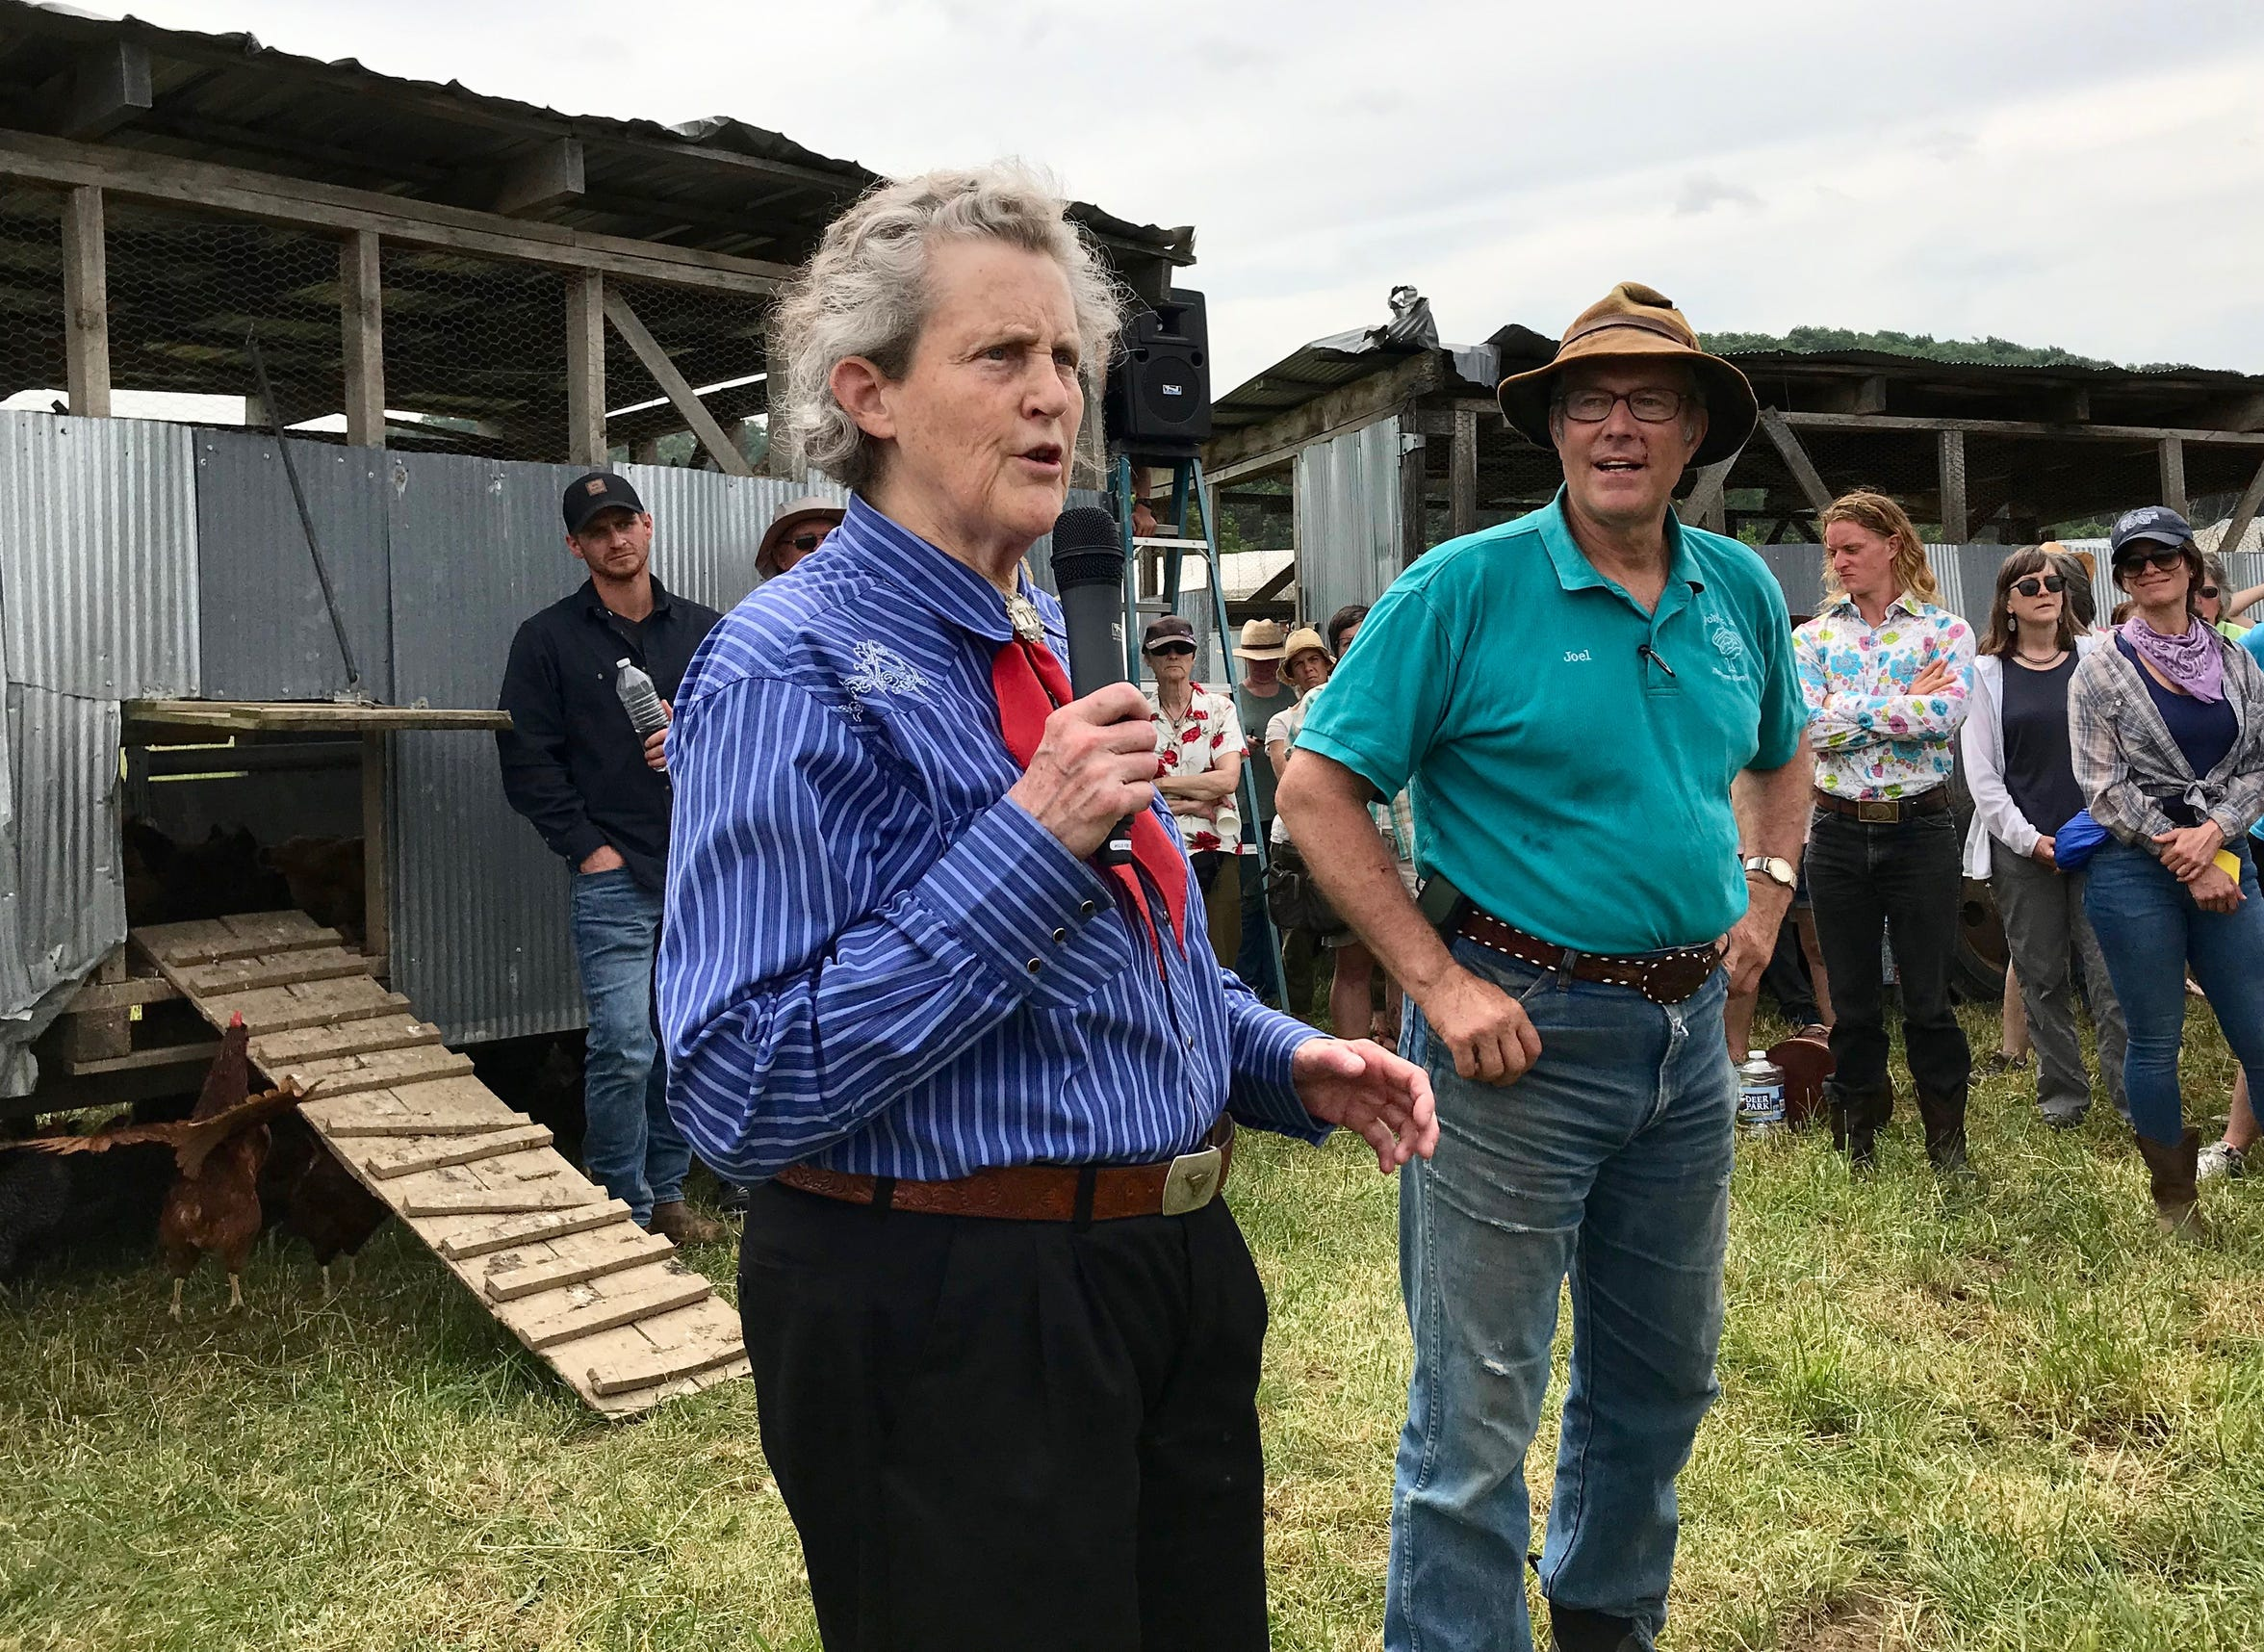 A day with Temple Grandin on Polyface Farms in Swoope, Virginia, on Wednesday, May 29, 2019. Temple Grandin and Joel Salatin talk to visitors in the front of the eggmobile stop on the farm tour.